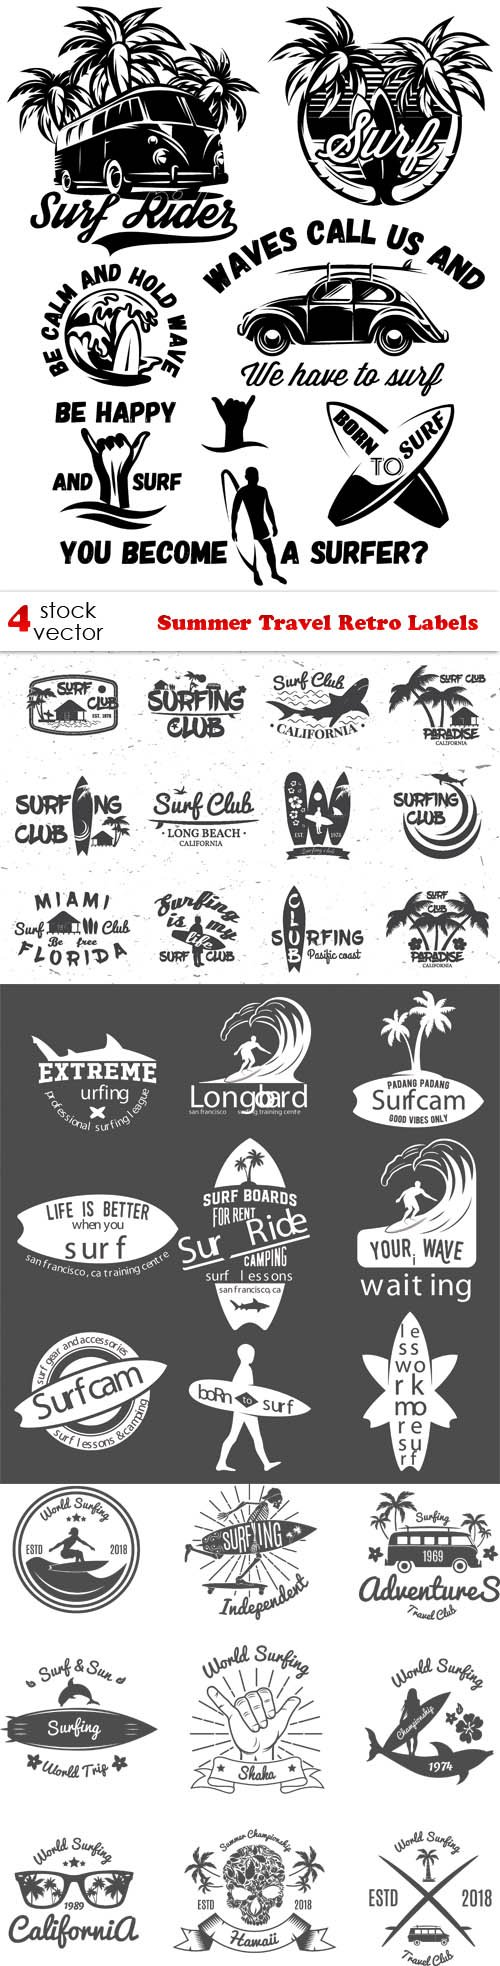 Vectors - Summer Travel Retro Labels